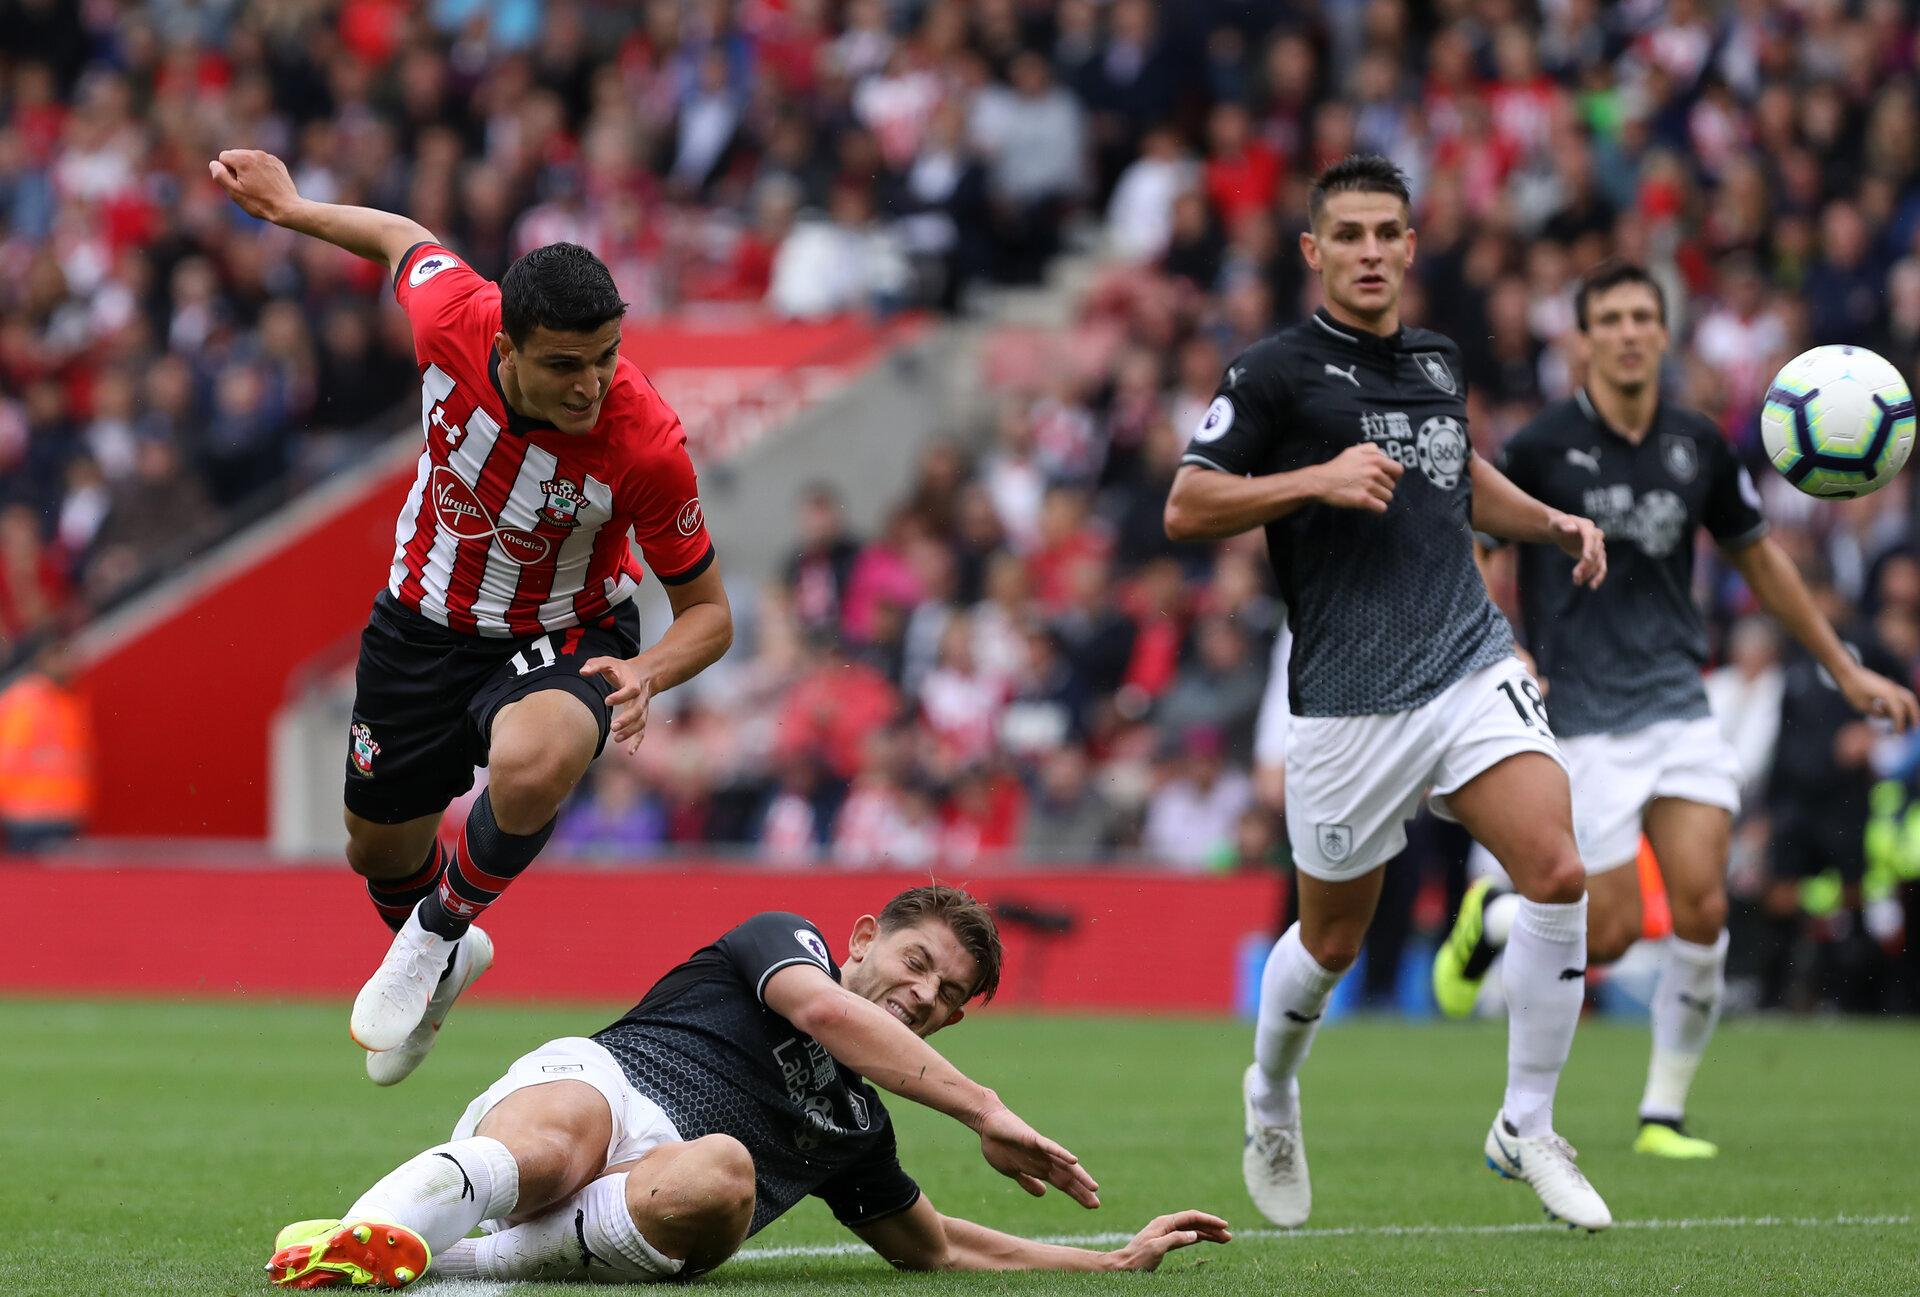 SOUTHAMPTON, ENGLAND - AUGUST 12: Mohamed Elyounoussi of Southampton during the Premier League match between Southampton FC and Burnley FC at St Mary's Stadium on August 12, 2018 in Southampton, United Kingdom. (Photo by Chris Moorhouse/Southampton FC via Getty Images)